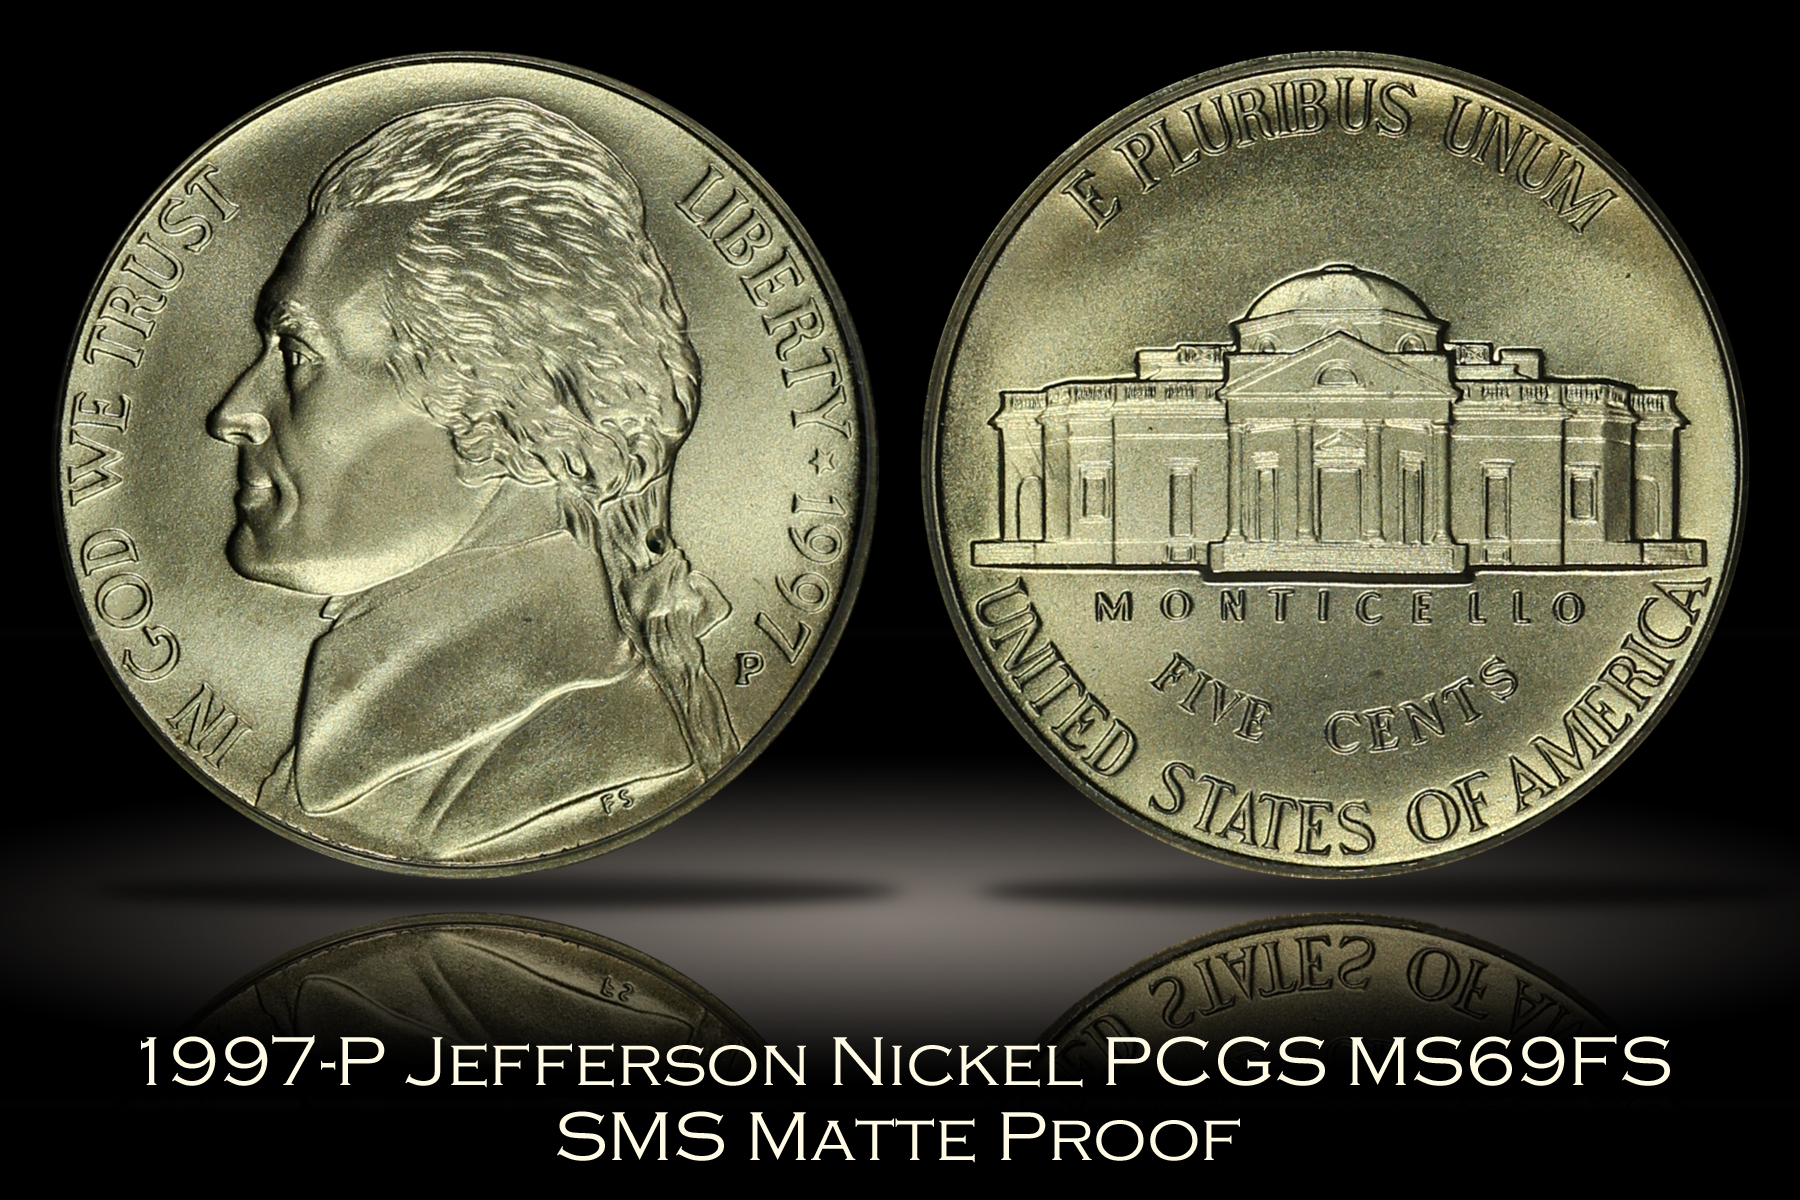 1997-P SMS Matte Proof Jefferson Nickel PCGS MS69FS